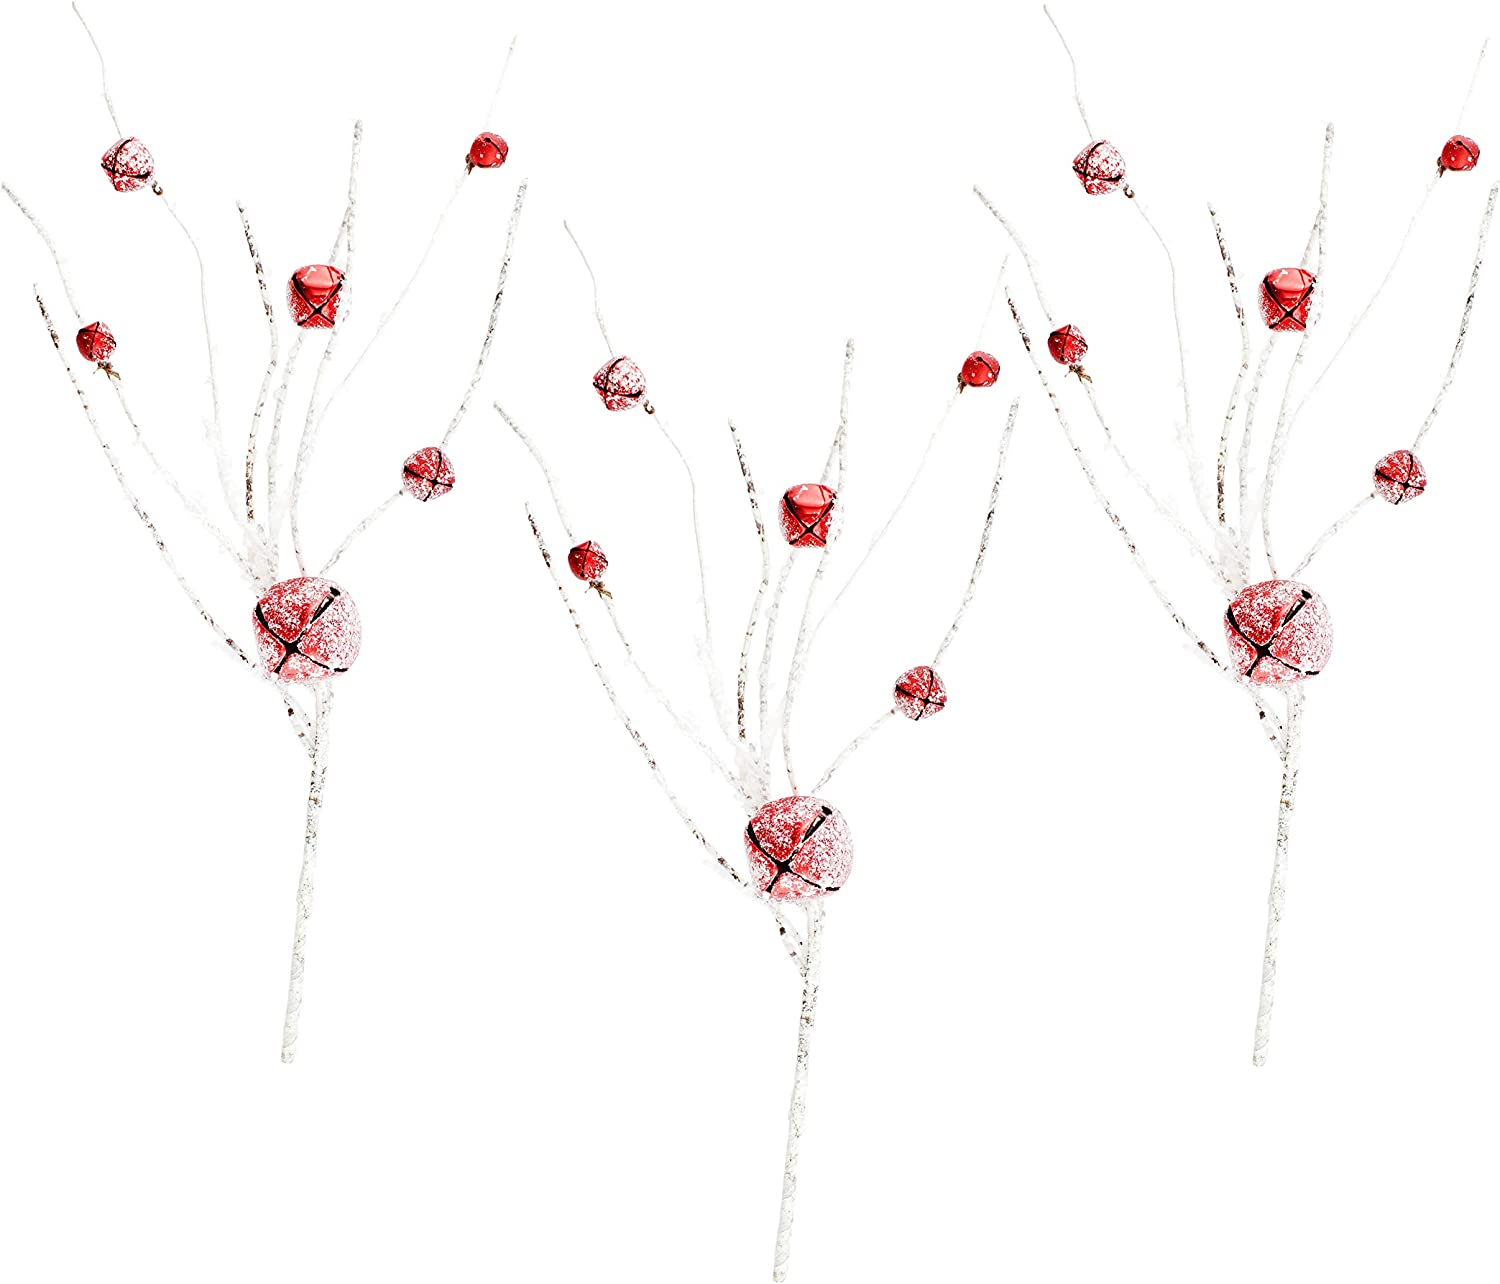 AuldHome Snow Frosted Jingle Bell Picks (Set of 3, 18-Inch); Glittery Twig and Red Bell Floral Picks for Christmas and Seasonal Decor